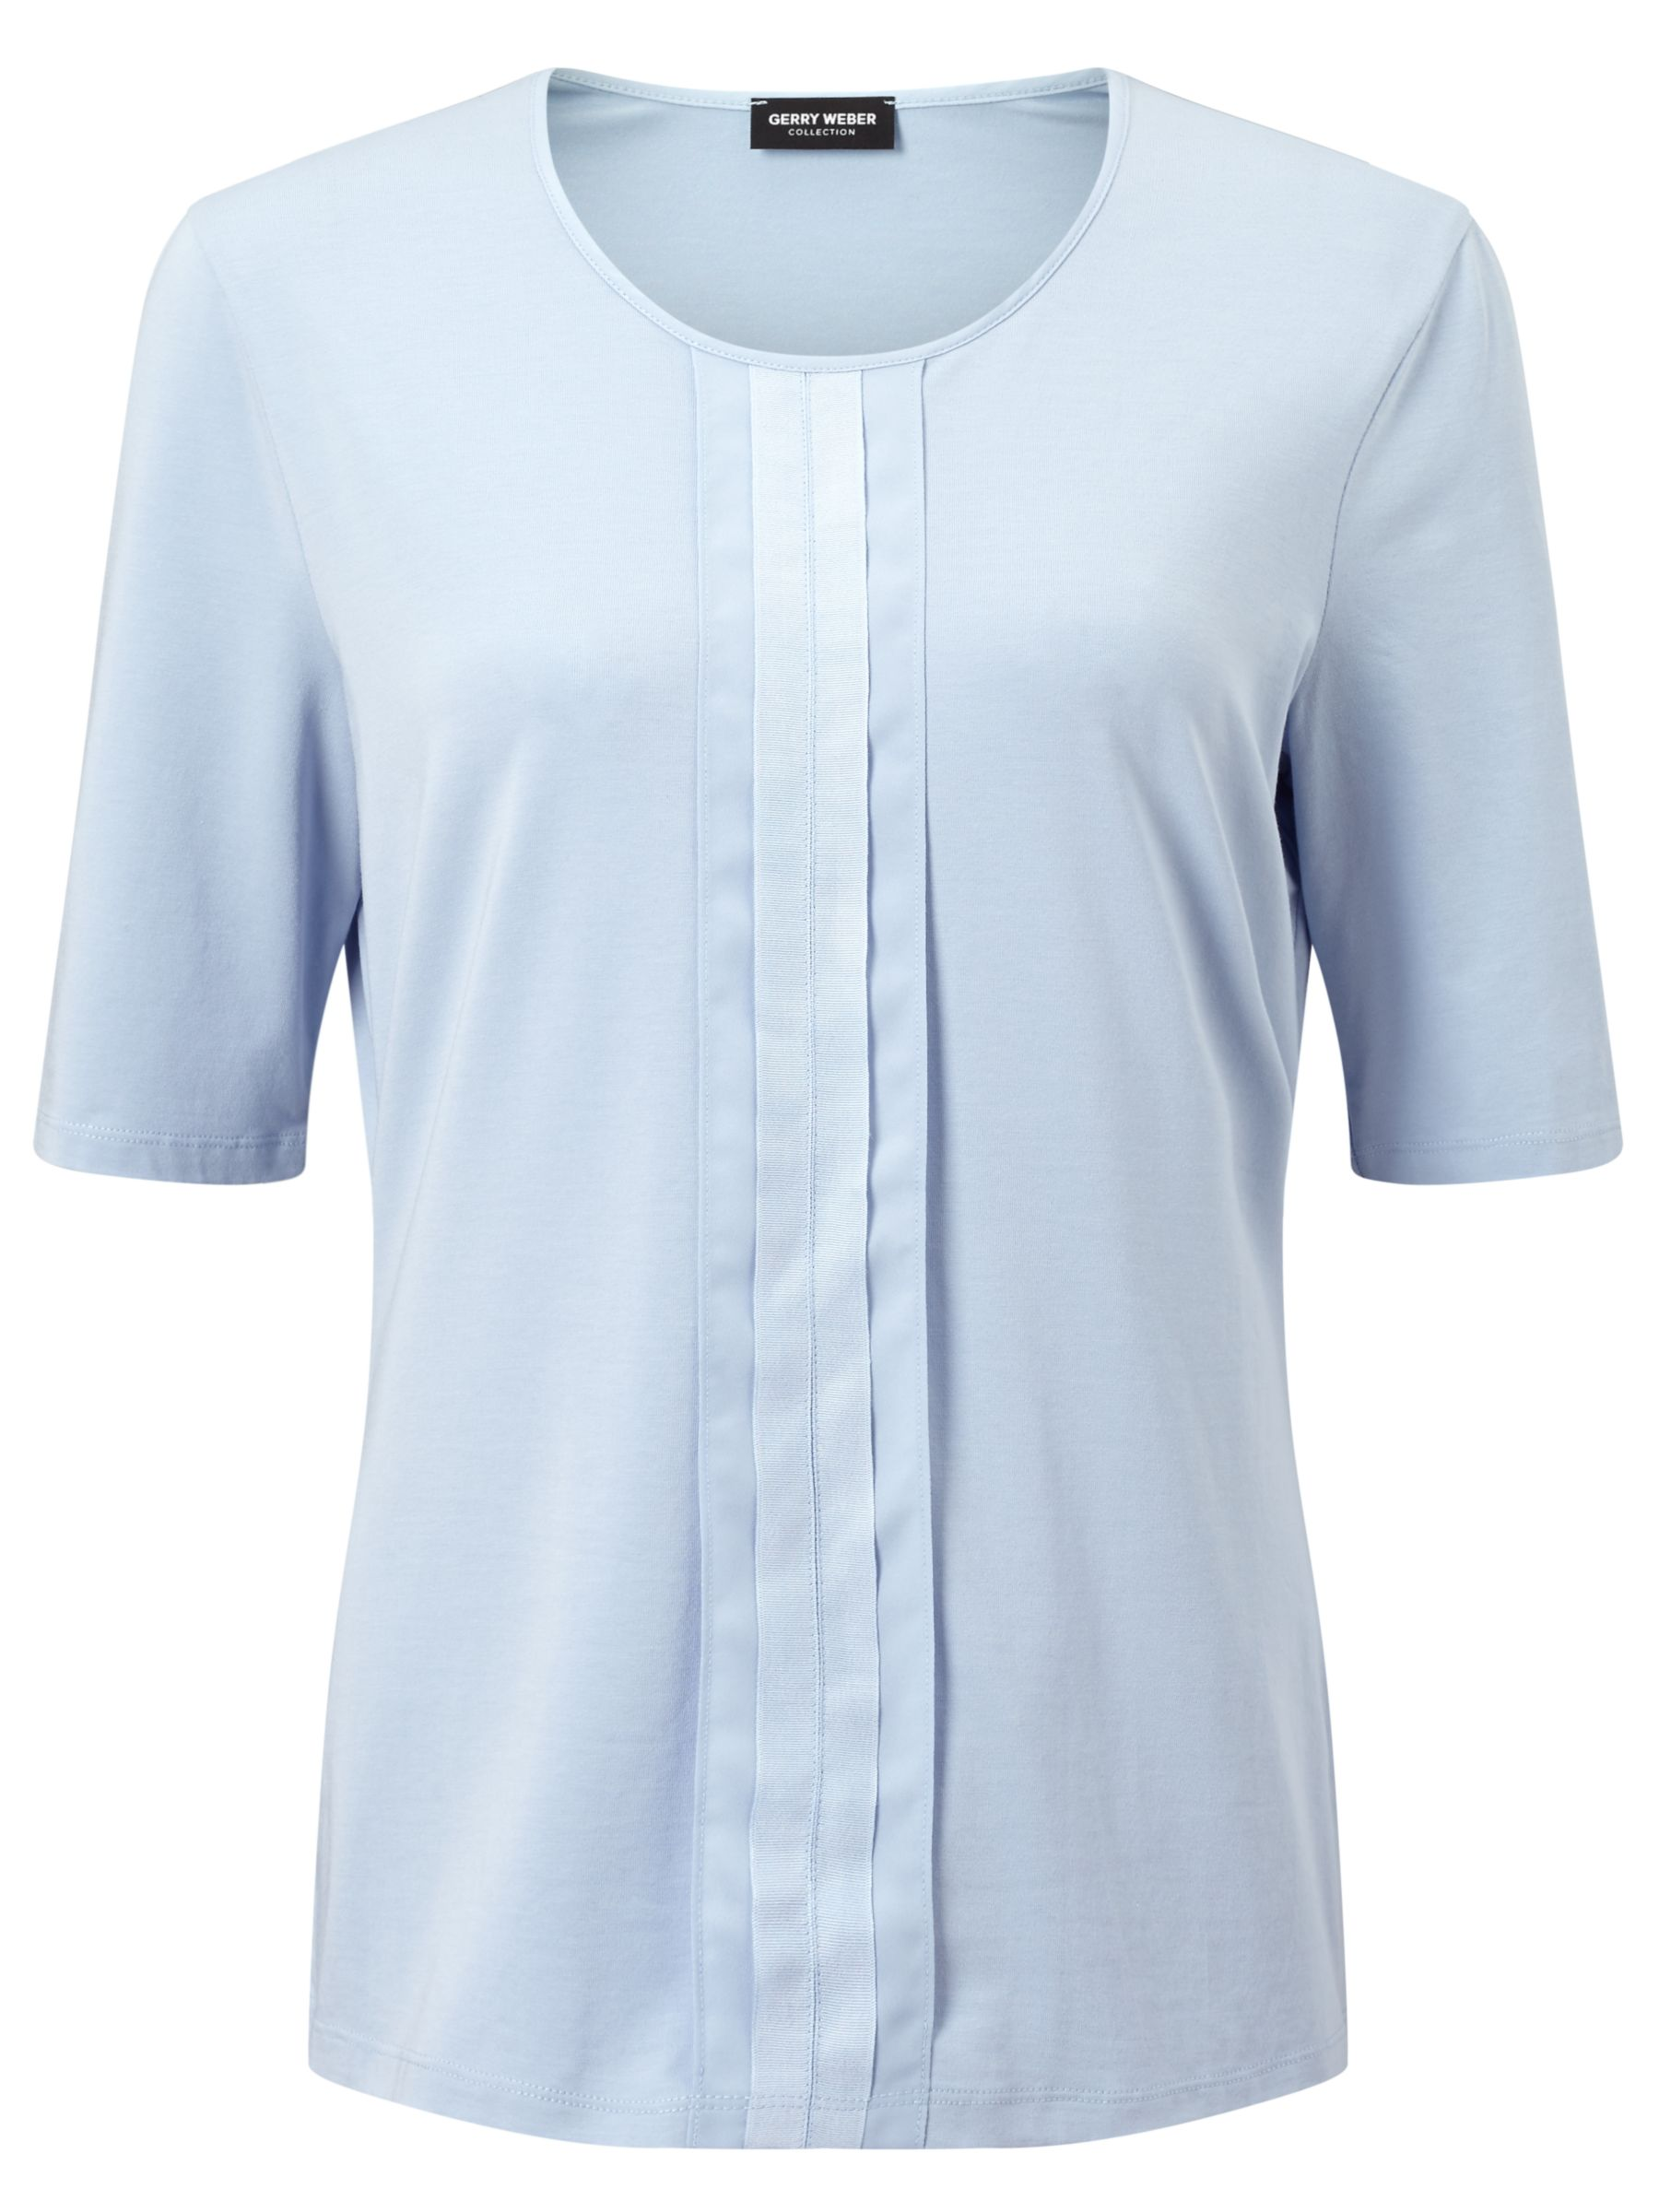 Gerry Weber Gerry Weber Pleat Front Jersey Top, Light Blue